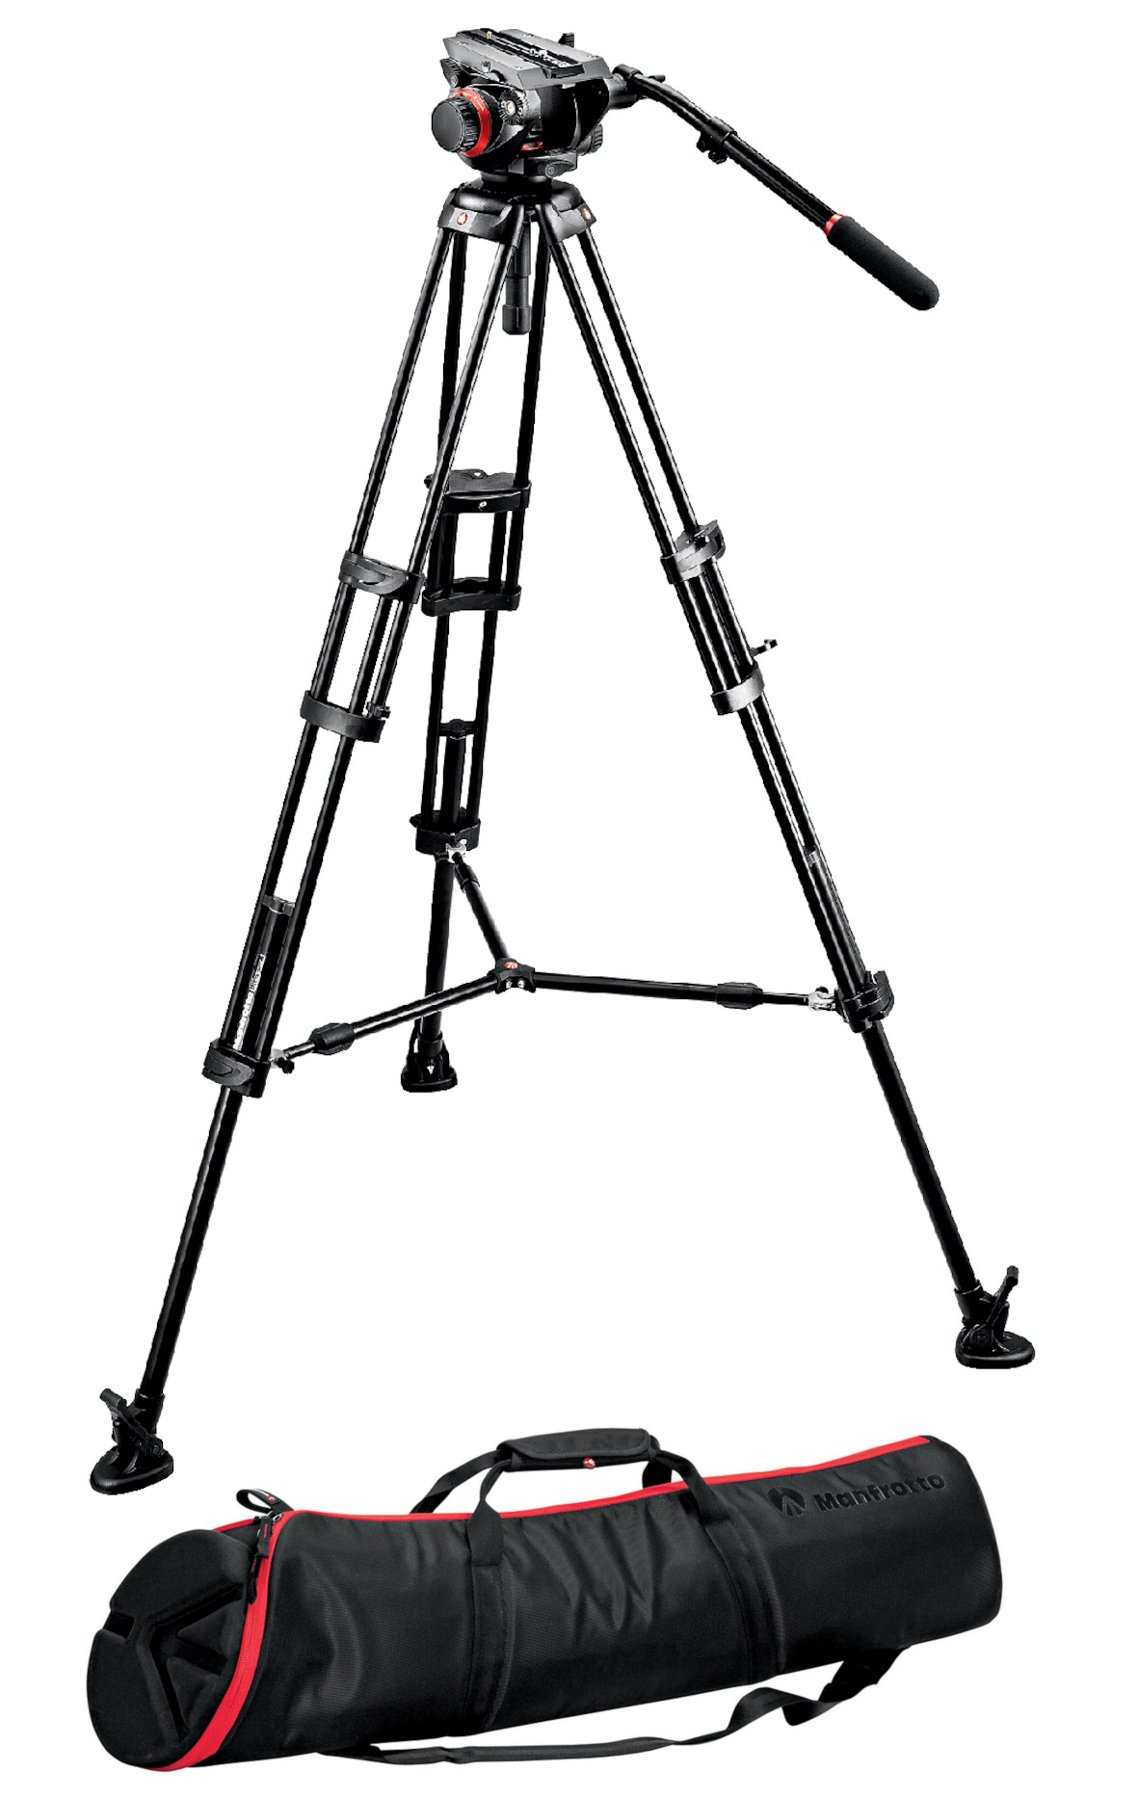 Midi Twin System with 504HD Head and 546BK Tripod with Mid-Level Spreader